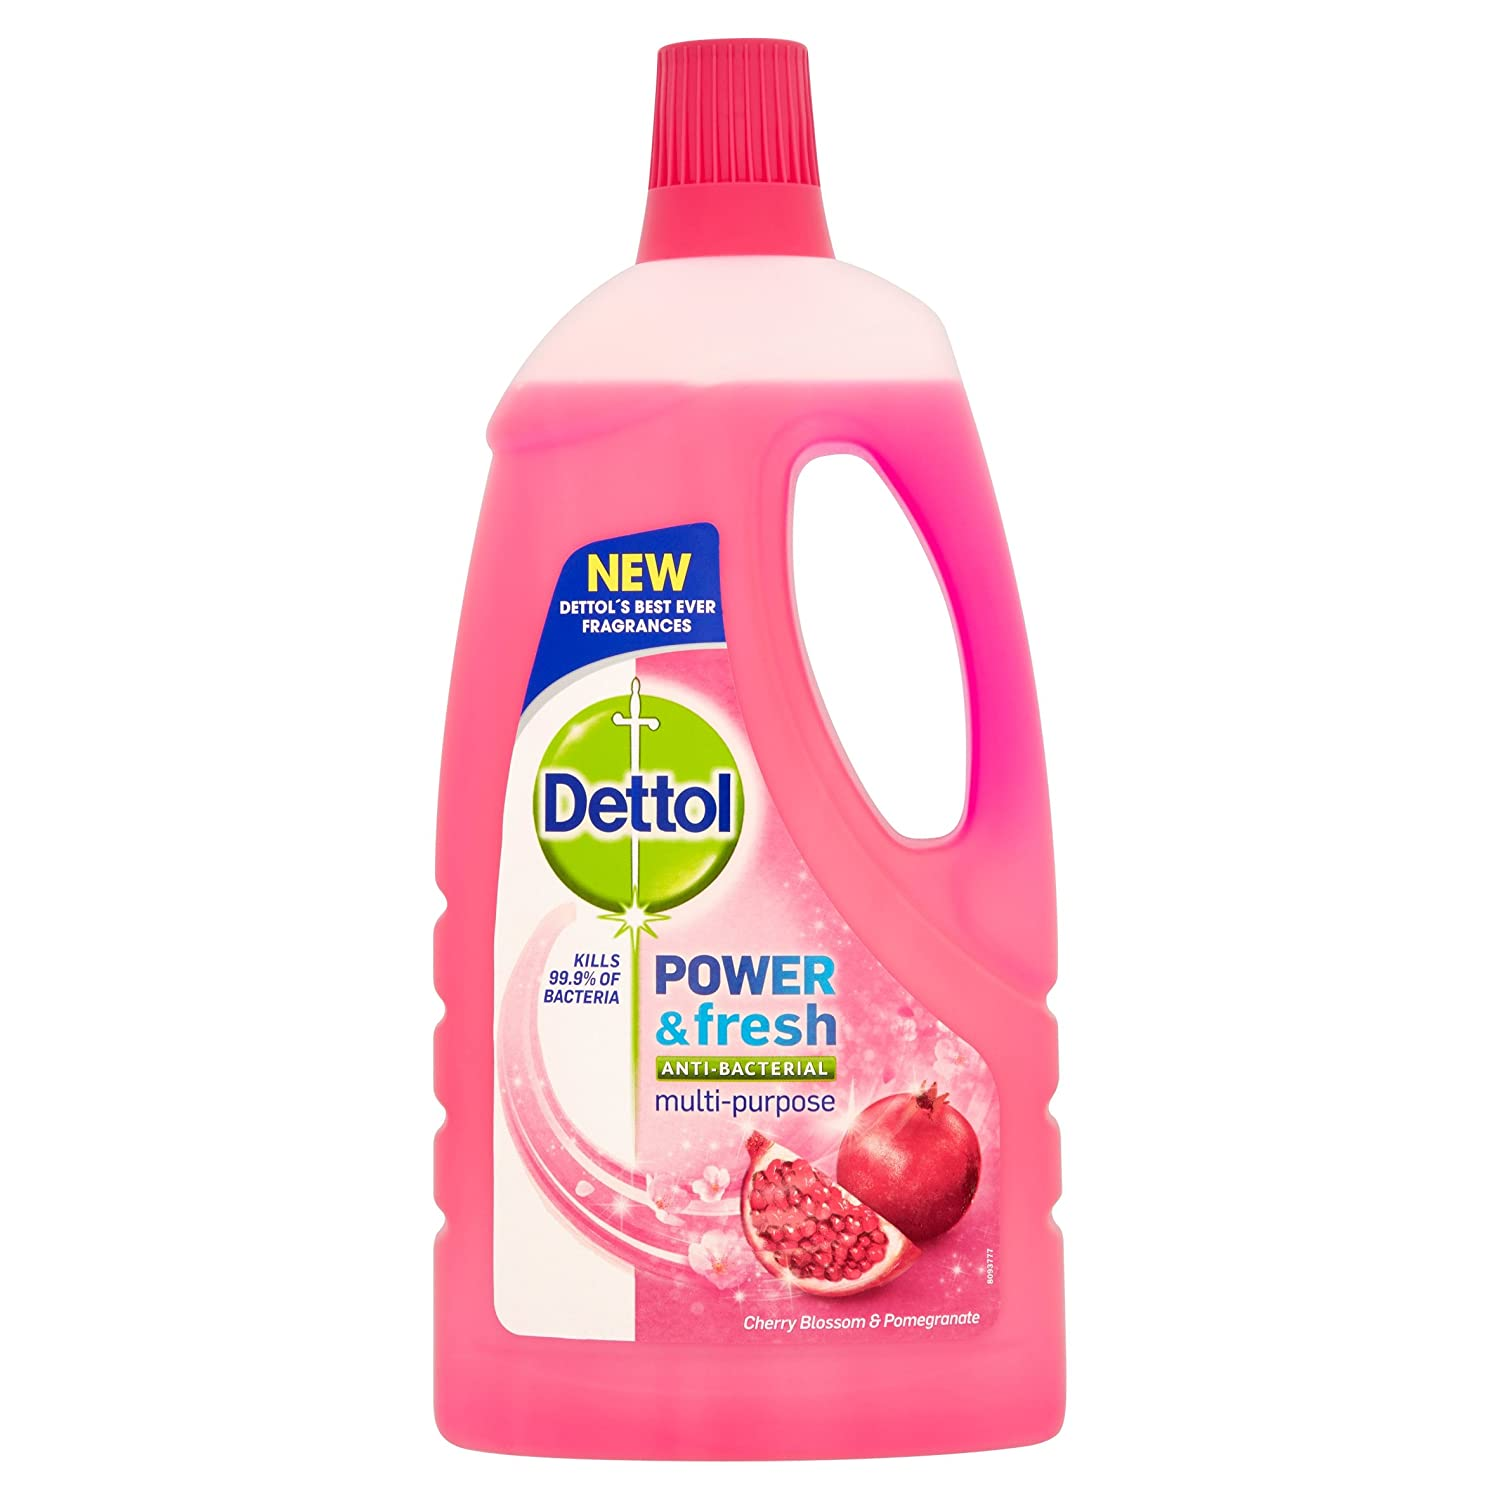 Dettol Power and Fresh Multi Purpose Cleaner 1 L - Cherry Blossom ...